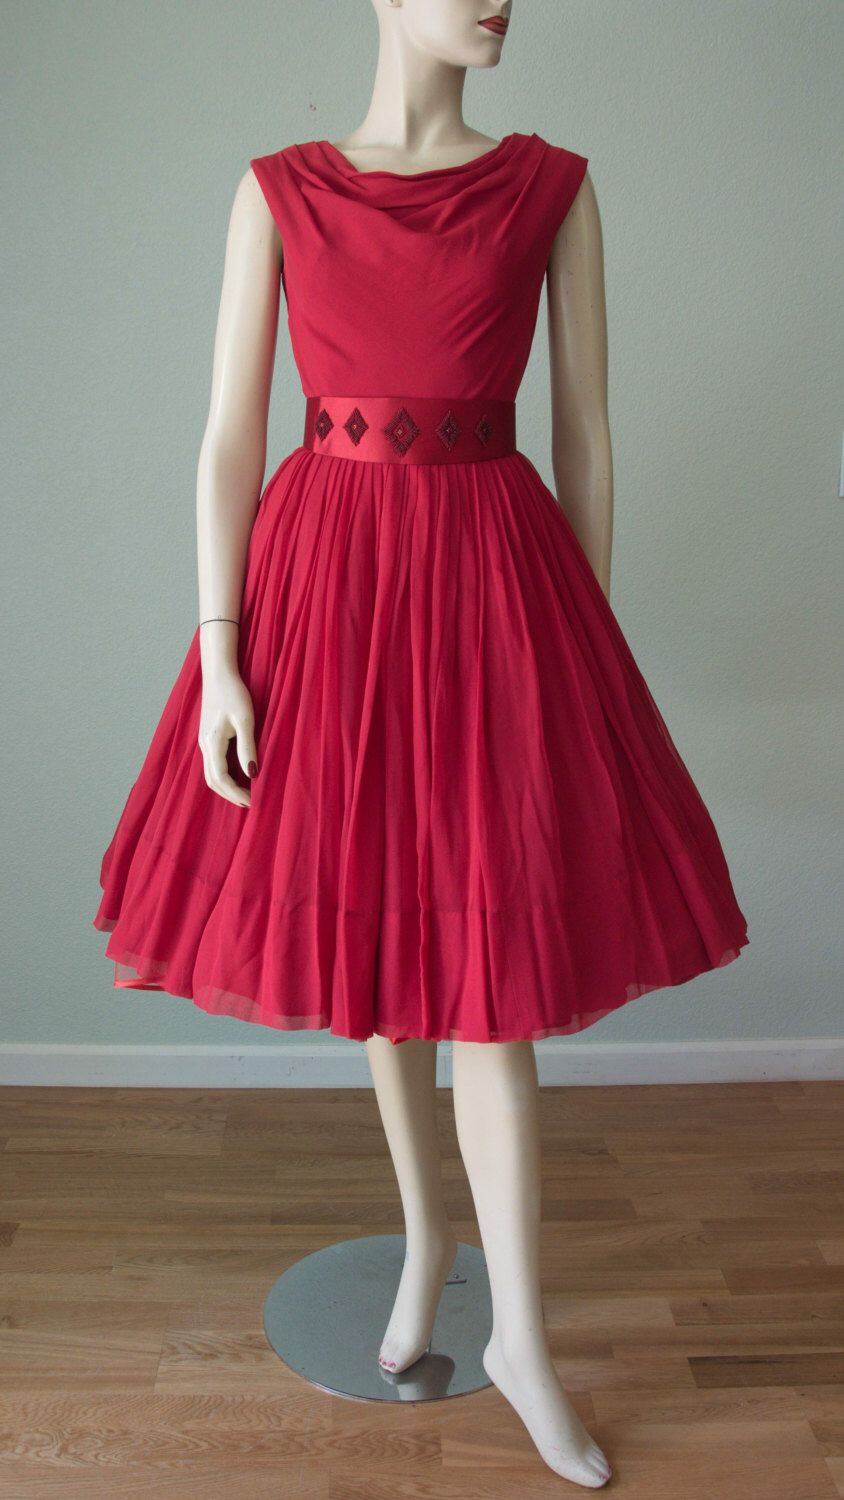 1950s-60s Dreamy Berry Red Silk Chiffon Dinner and Dancing Dress // Beaded Satin Belt // Draped Neckline  // Miss Elliette - Small by KittyGirlVintage on Etsy https://www.etsy.com/listing/462992781/1950s-60s-dreamy-berry-red-silk-chiffon